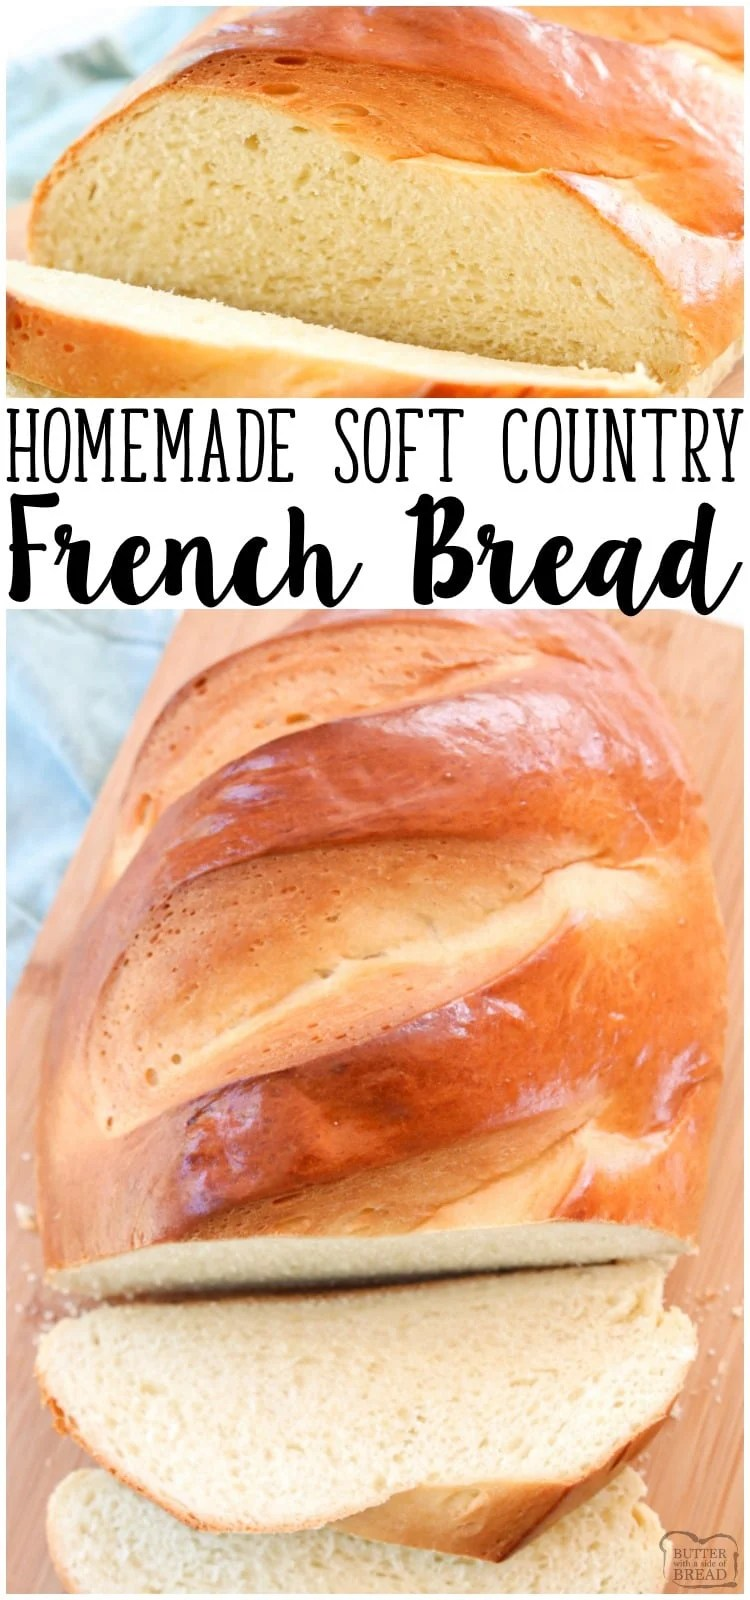 Country French Bread recipe made with simple ingredients & detailed instructions showing how to make bread! Done in just over an hour and is a showstopper!